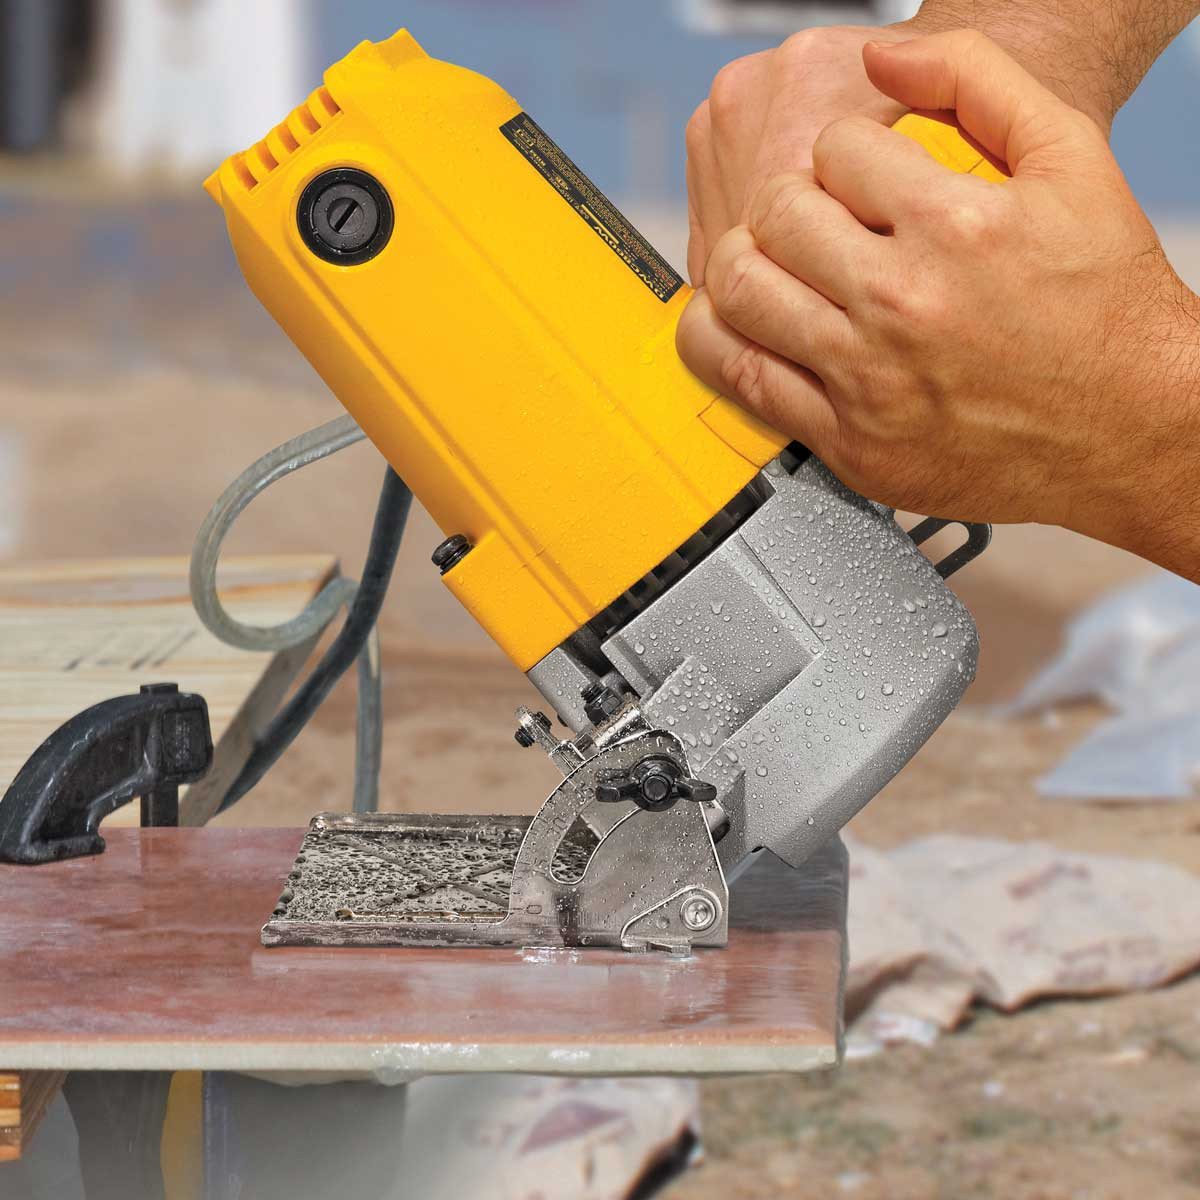 Dewalt DWC860W Heavy-Duty tile saw cutting on a 45